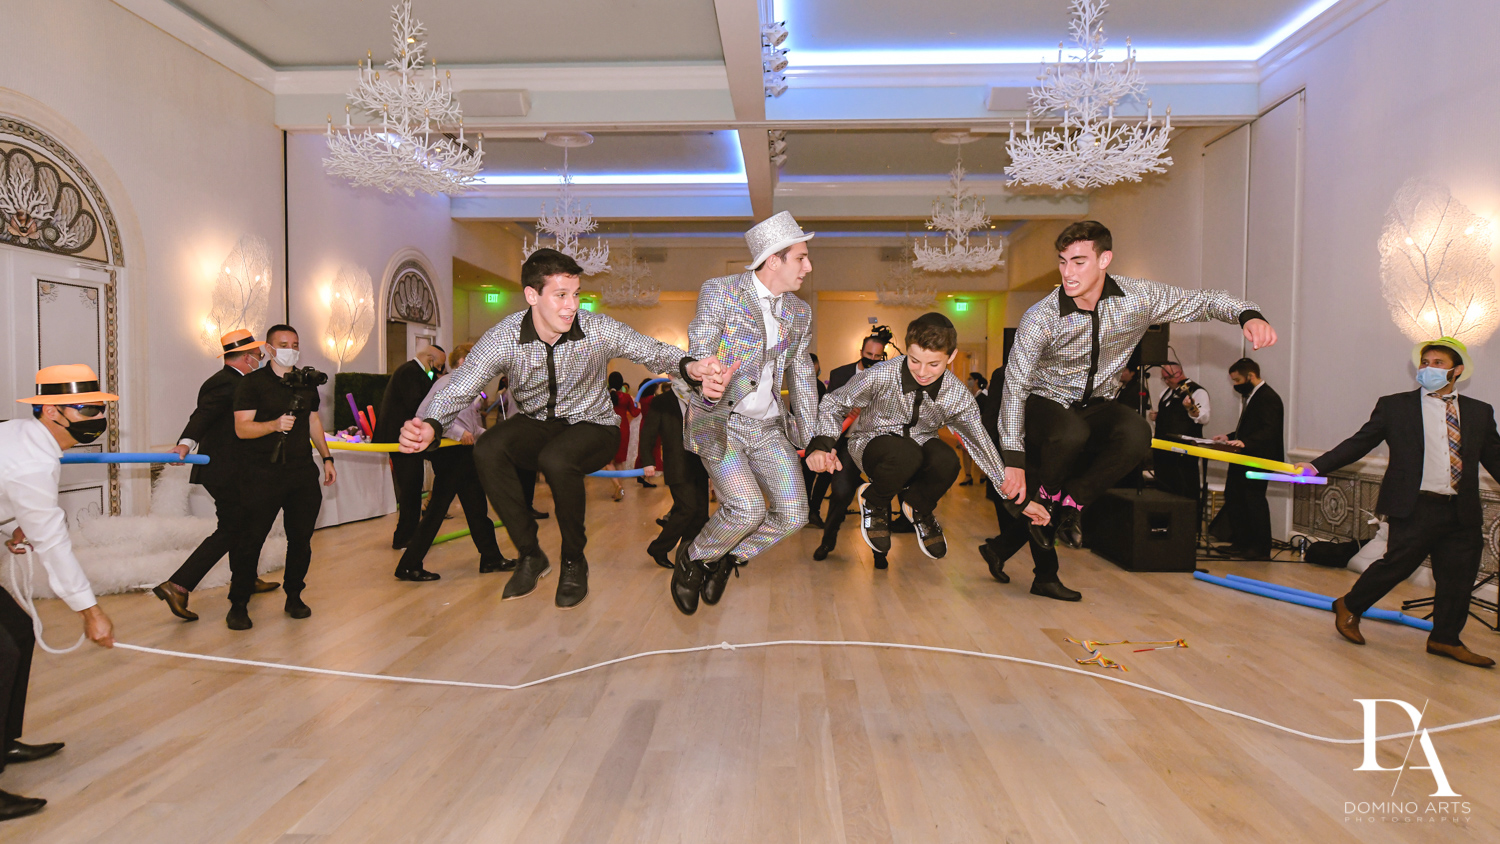 jump rope at Luxury Summer Wedding at The Colony Hotel Palm Beach by Domino Arts Photography